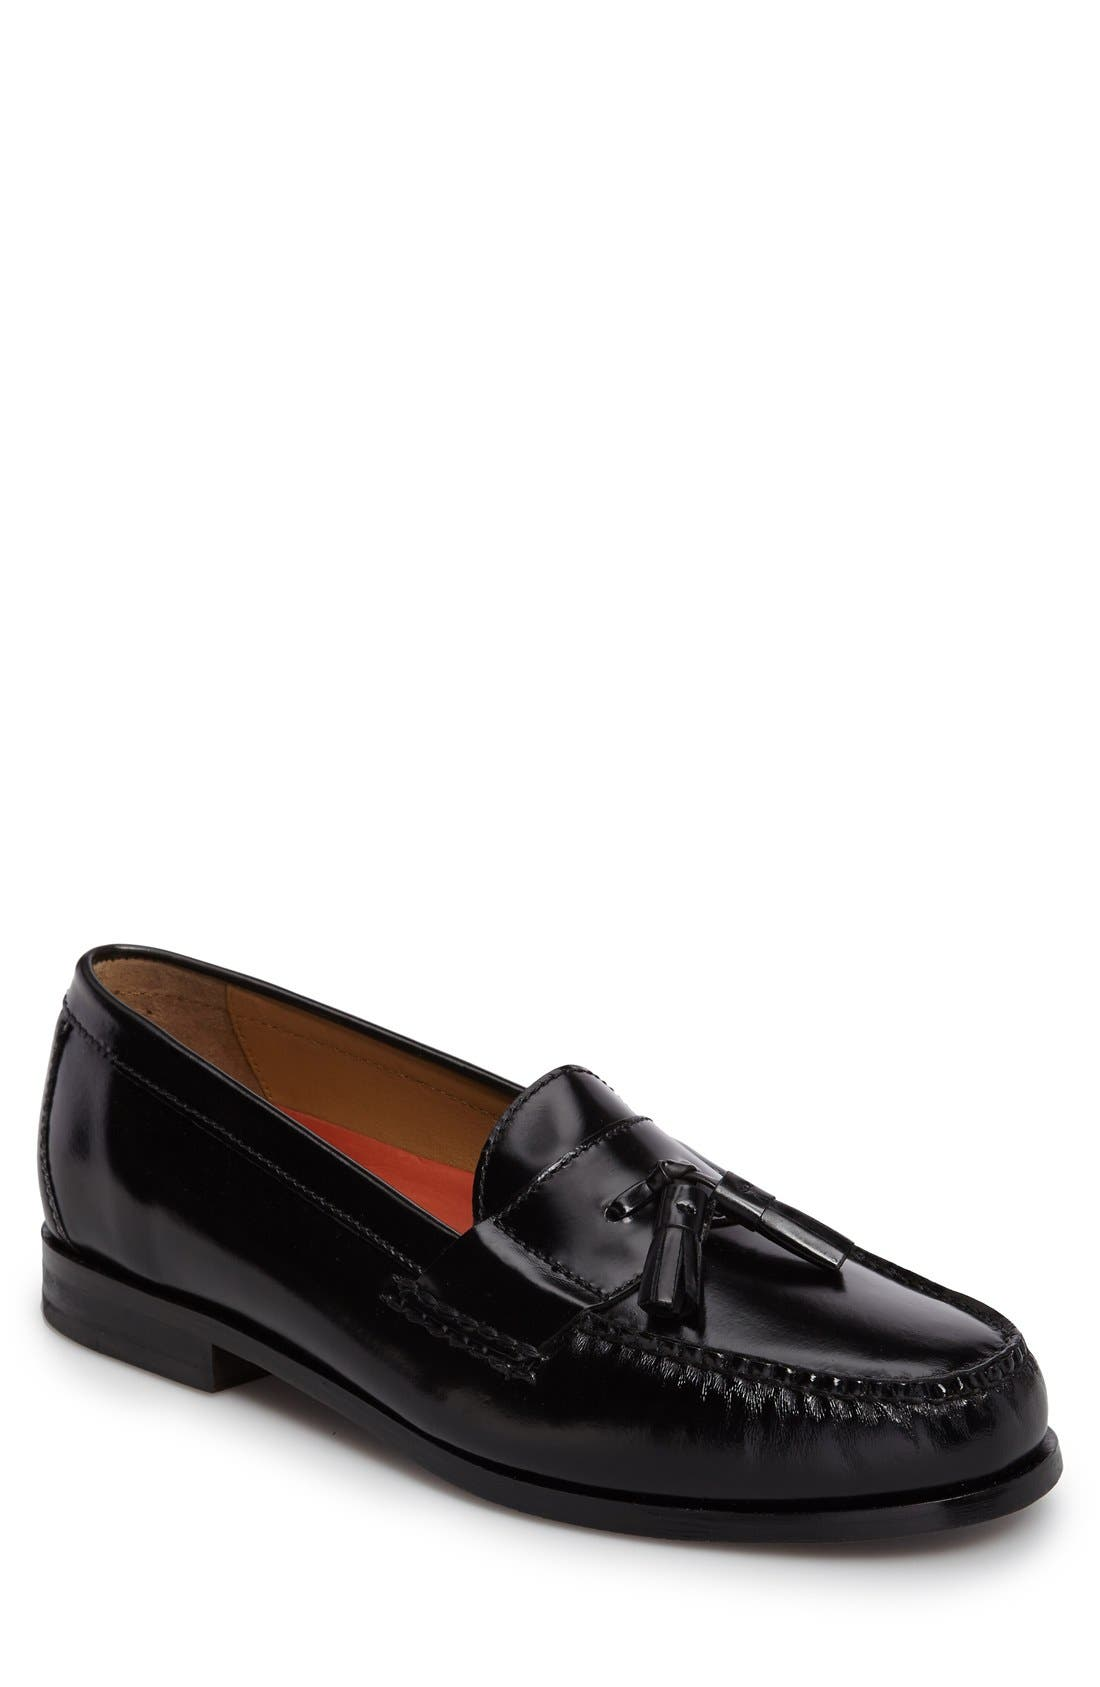 'Pinch Grand' Tassel Loafer,                             Alternate thumbnail 7, color,                             001